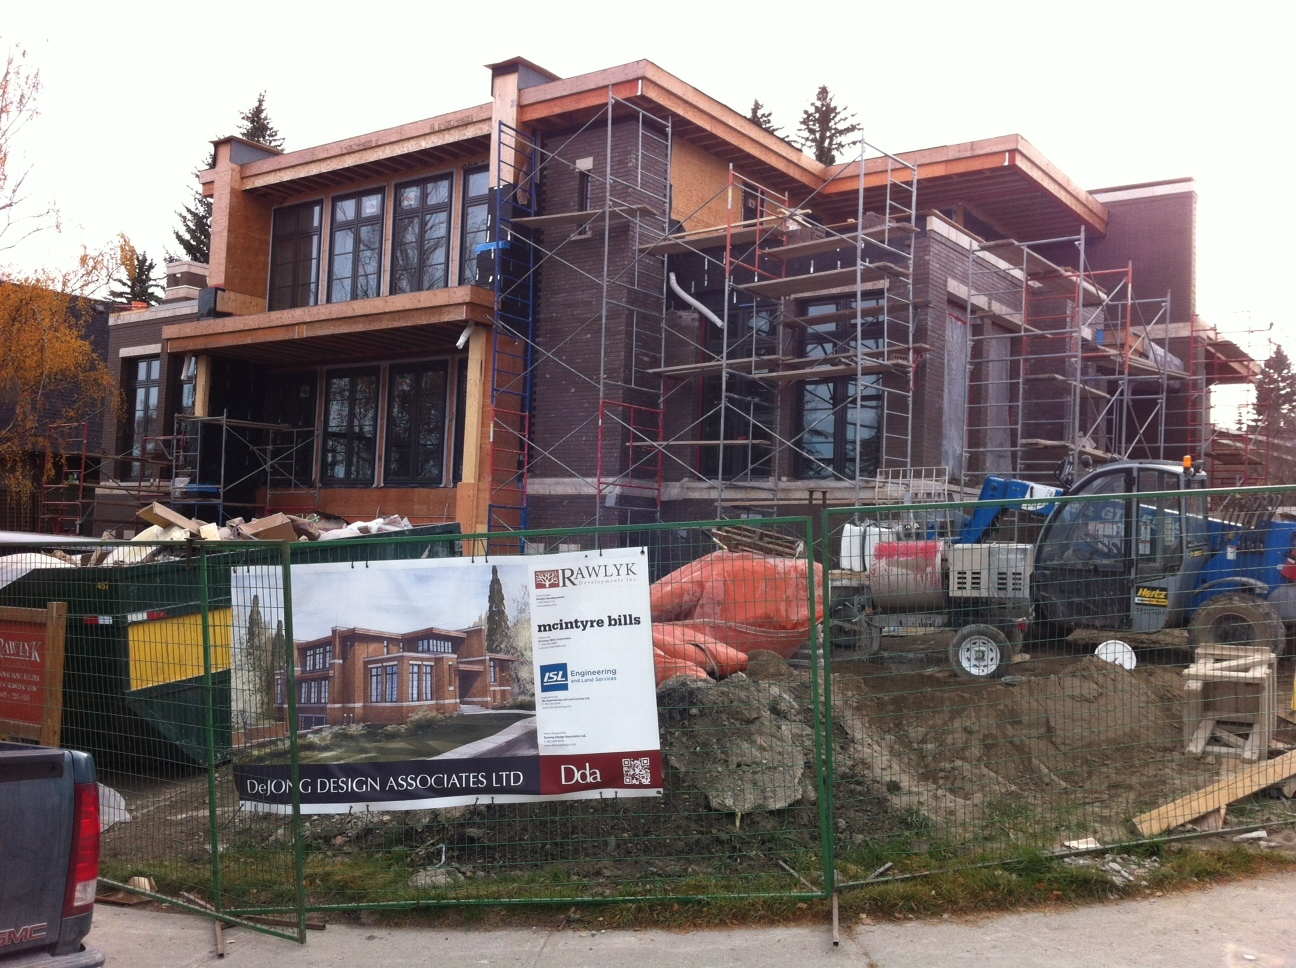 Just one of many new home construction sites in communities like Britannia, Altadore and Briar Hill located on higher ground.